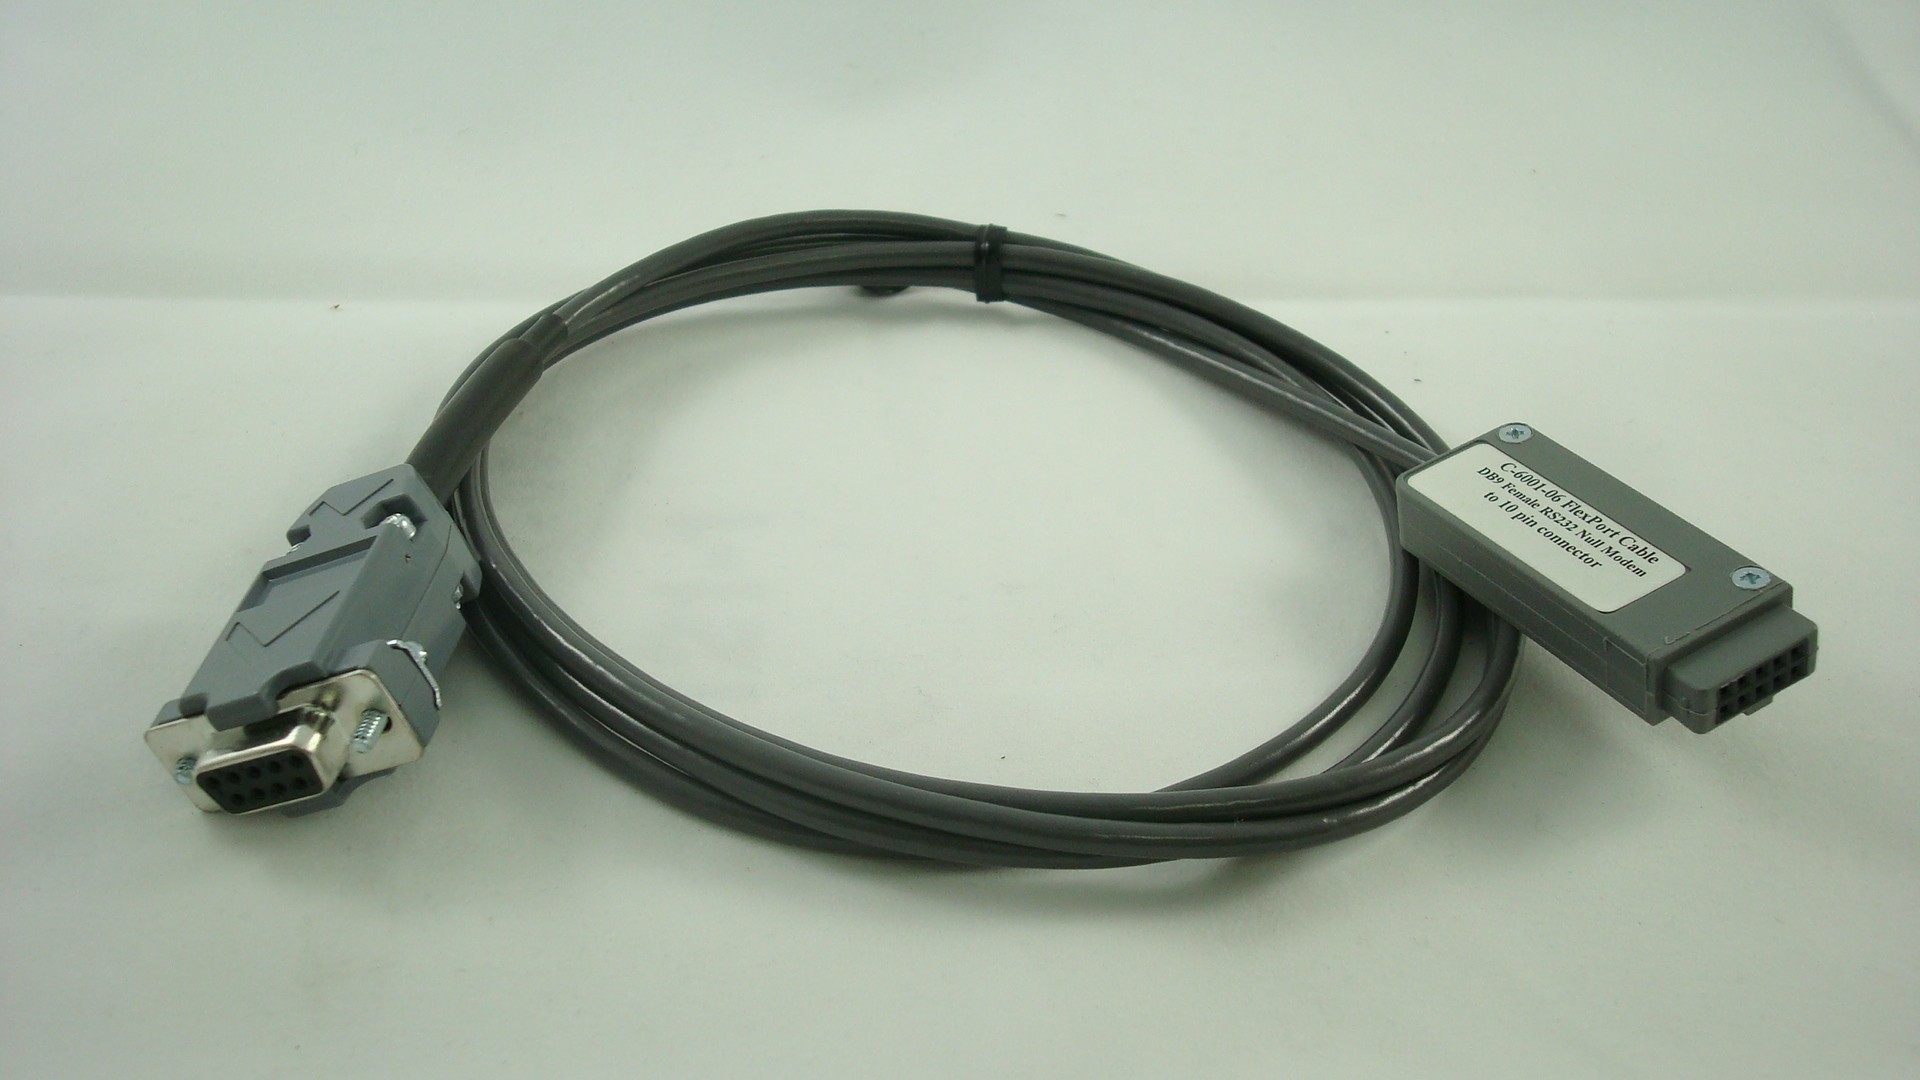 C-6000-06 RS232 DB9 Female to 10 pin connector (6 ft)